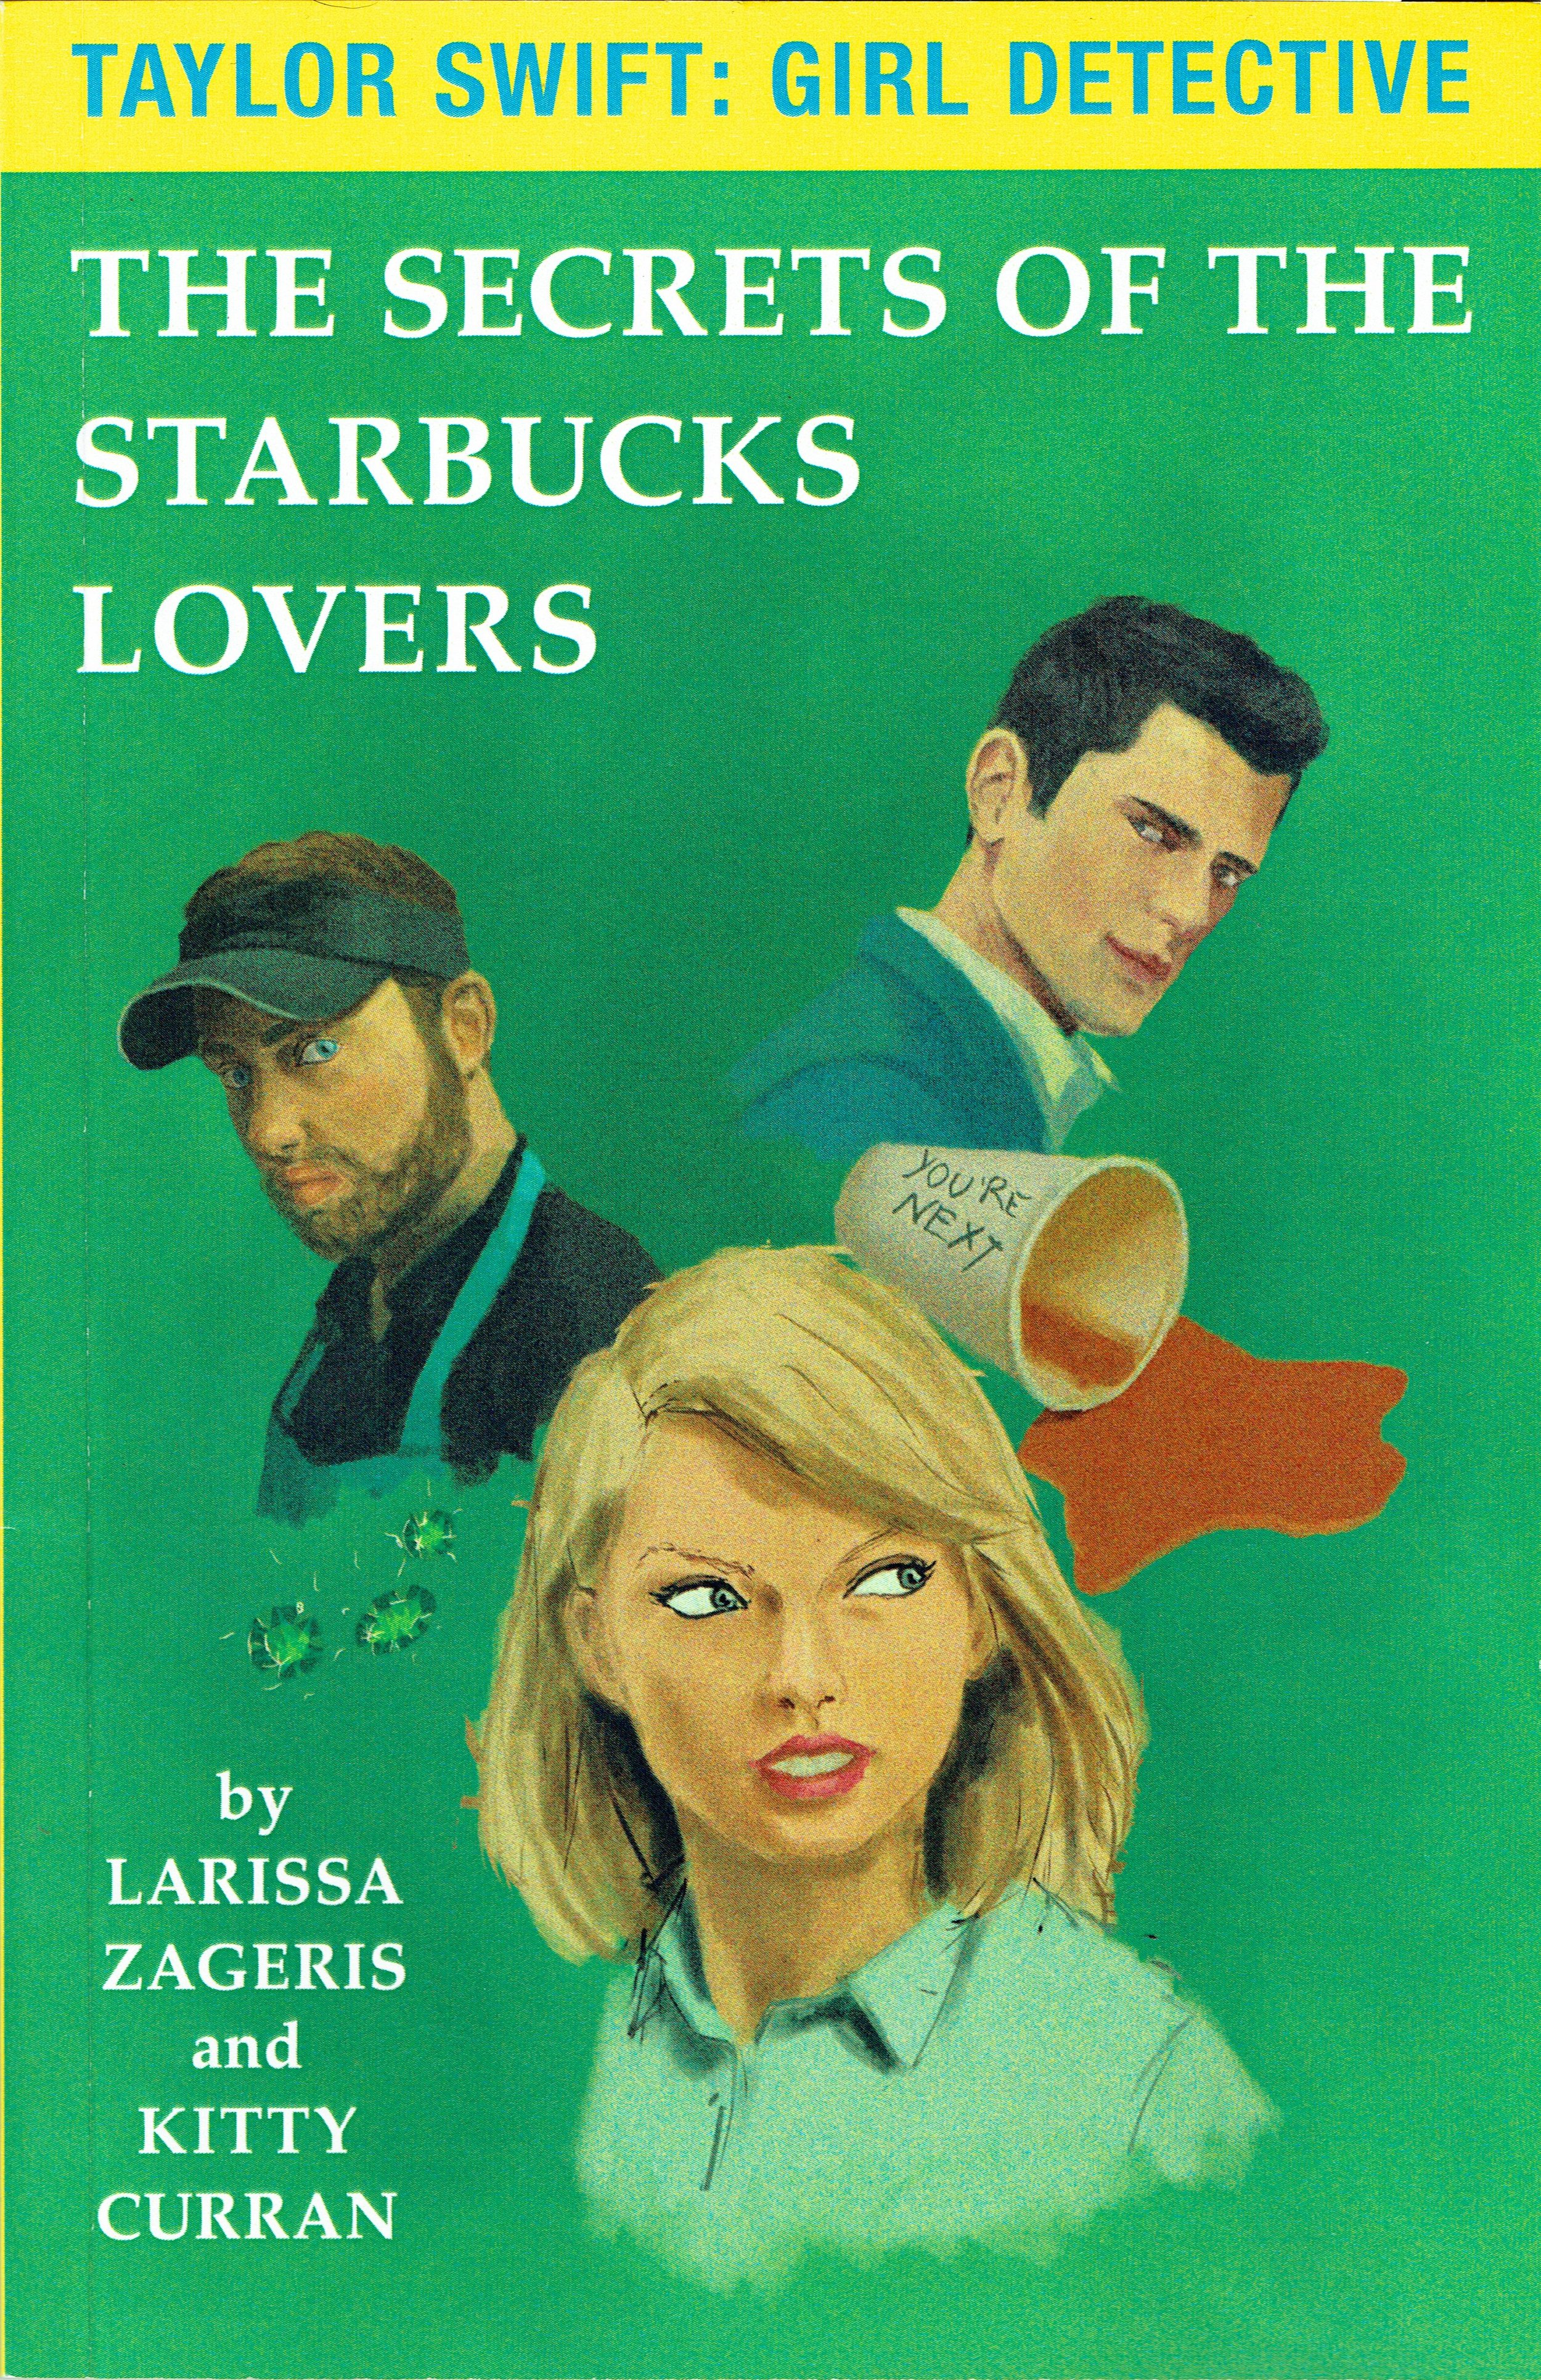 Taylor Swift: Girl Detective - The Secrets of the Starbucks Lovers by Larissa Zageris & Kitty Curran.